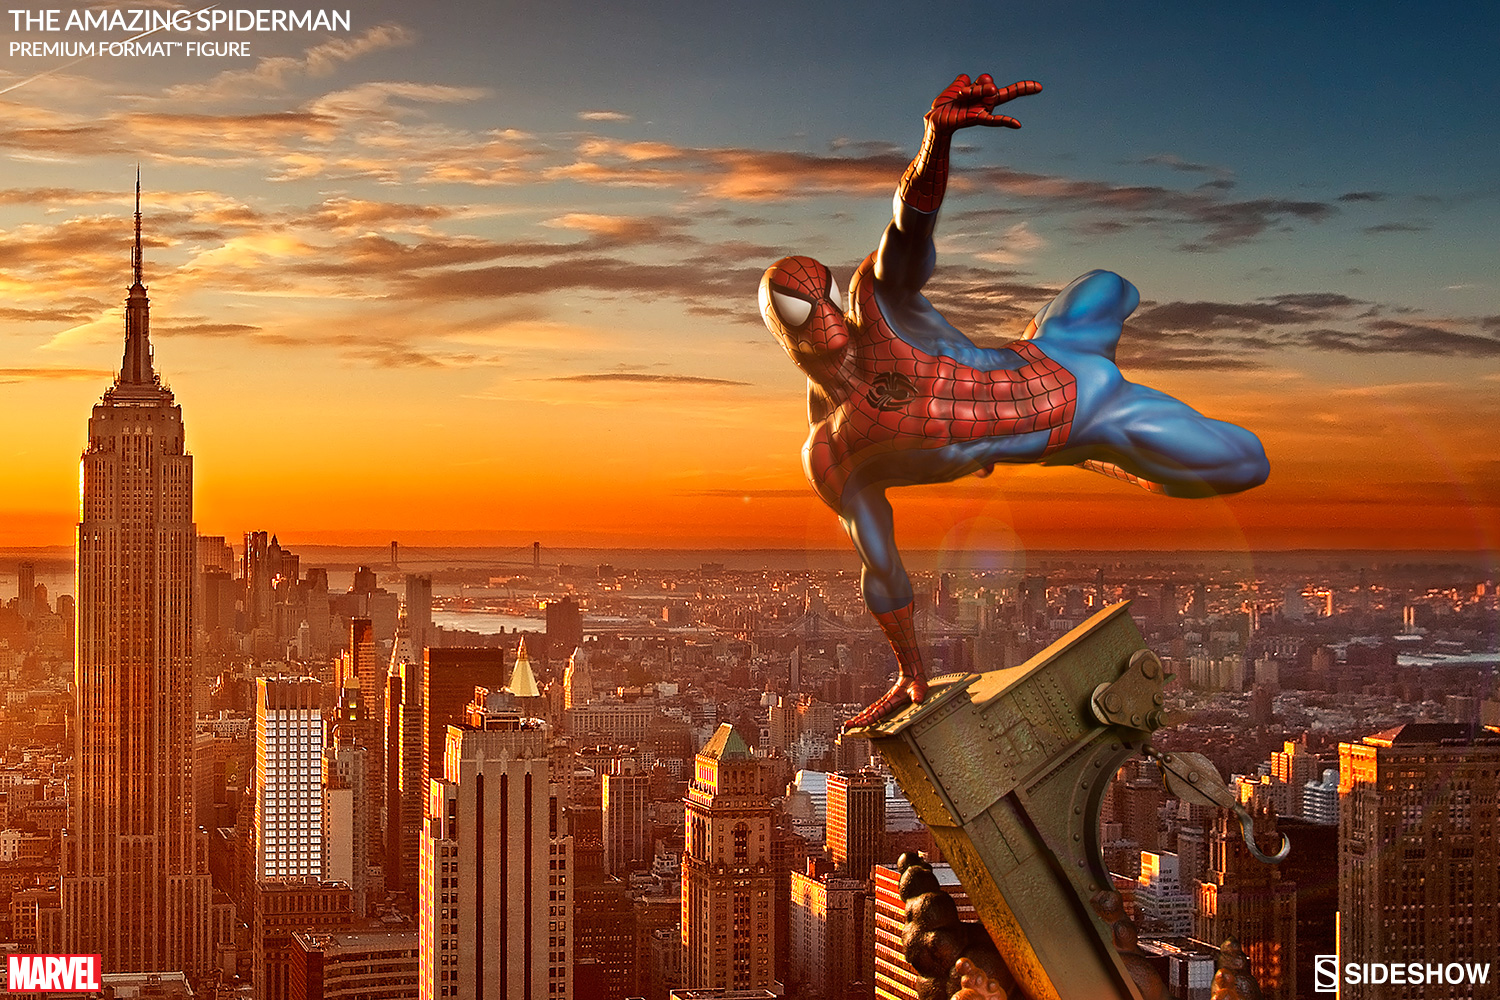 an analysis of spider man The second trailer for the amazing spider-man hit in the early hours of the morning and everyone's talking about it it's curious that sony/columbia chose to unleash the trailer on the internet.